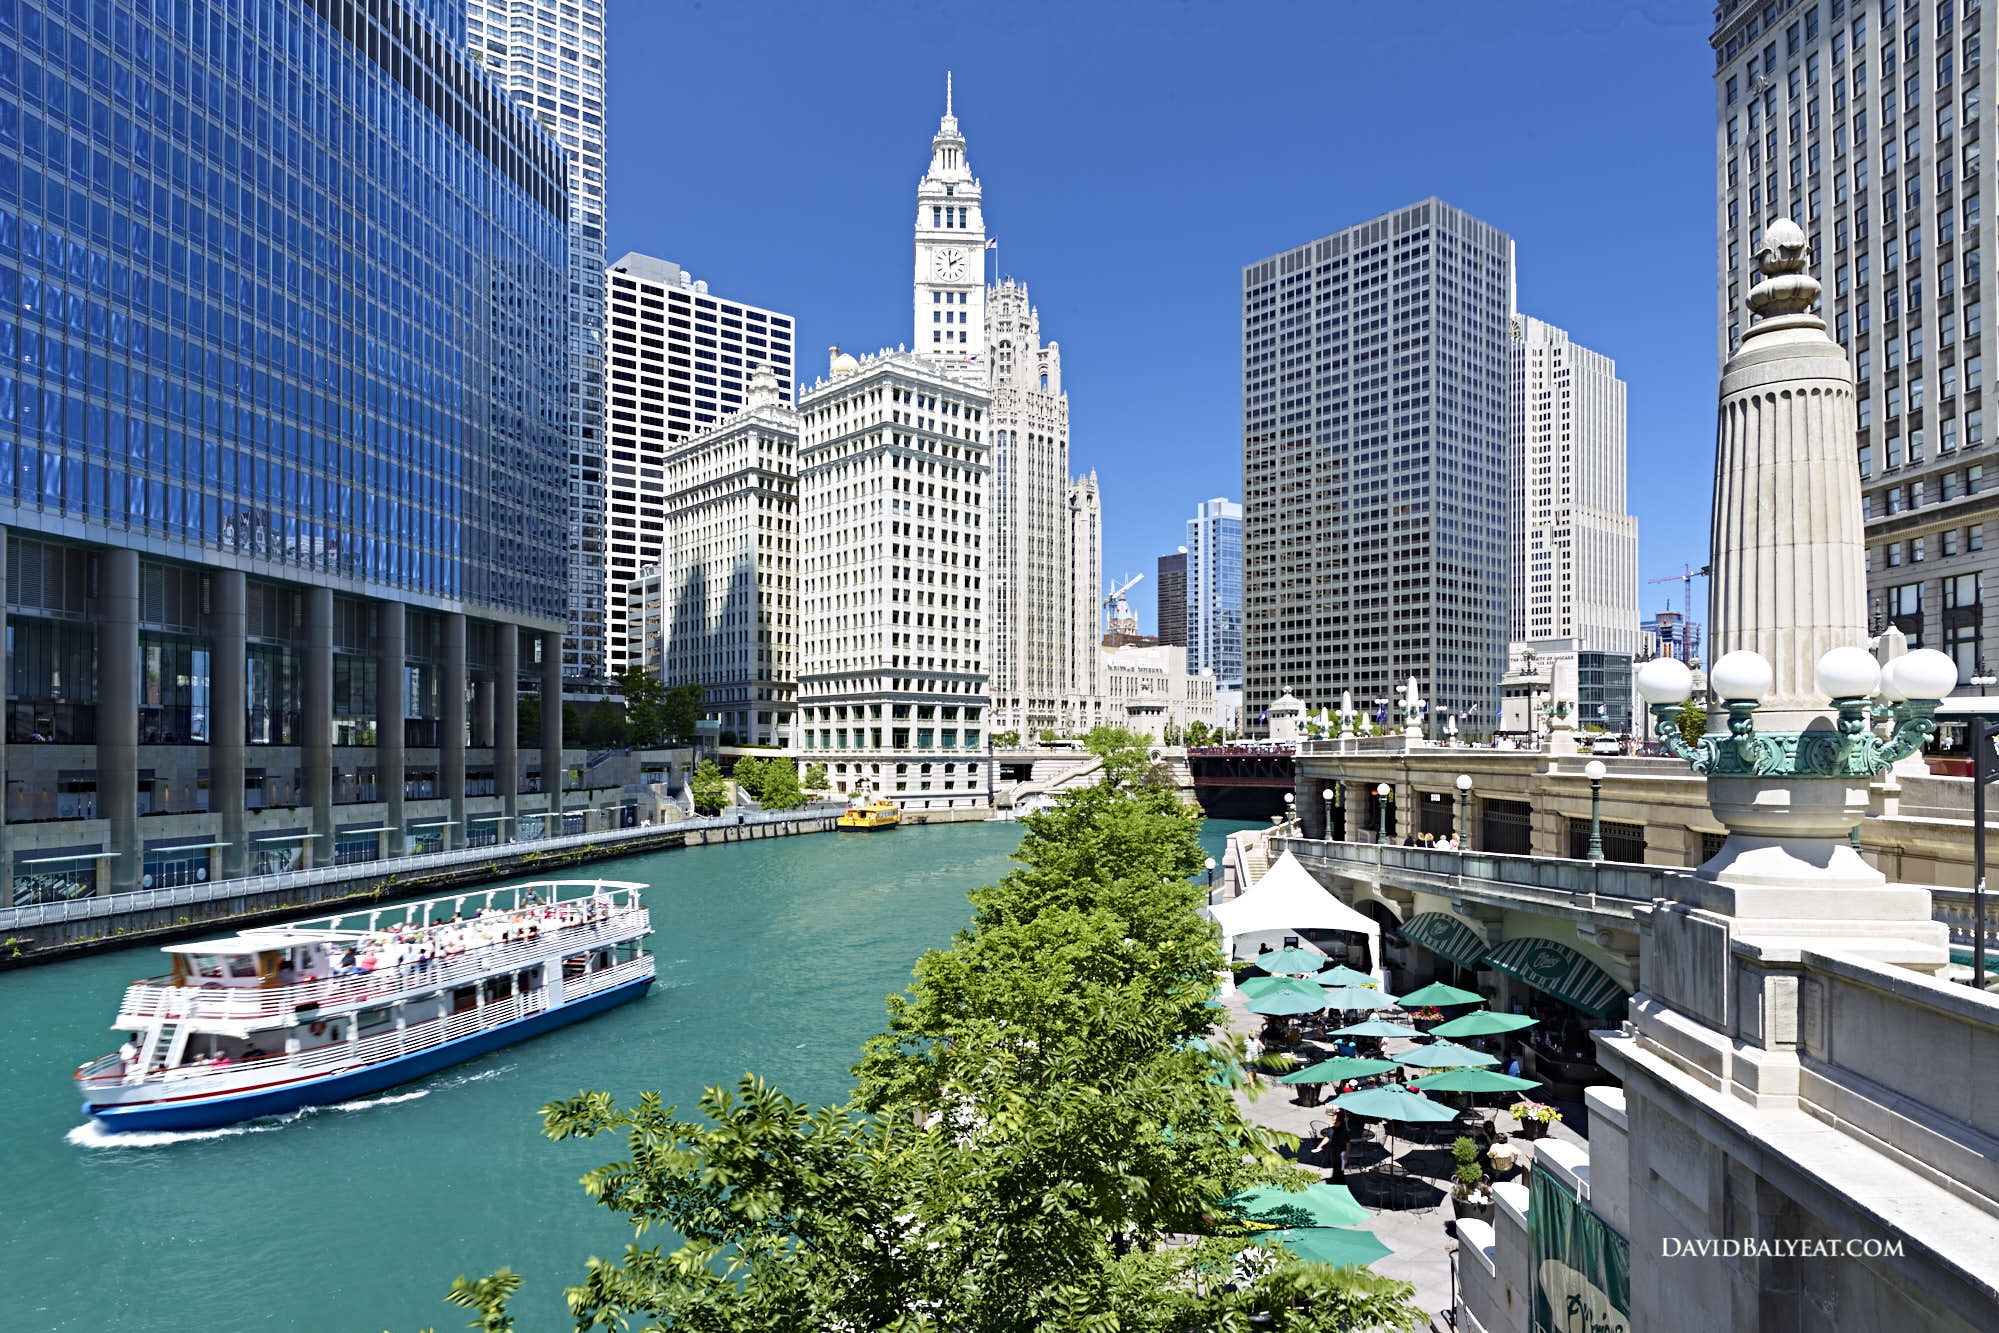 Chicago riverwalk ferry boat and patio diners high-definition HD professional landscape photography